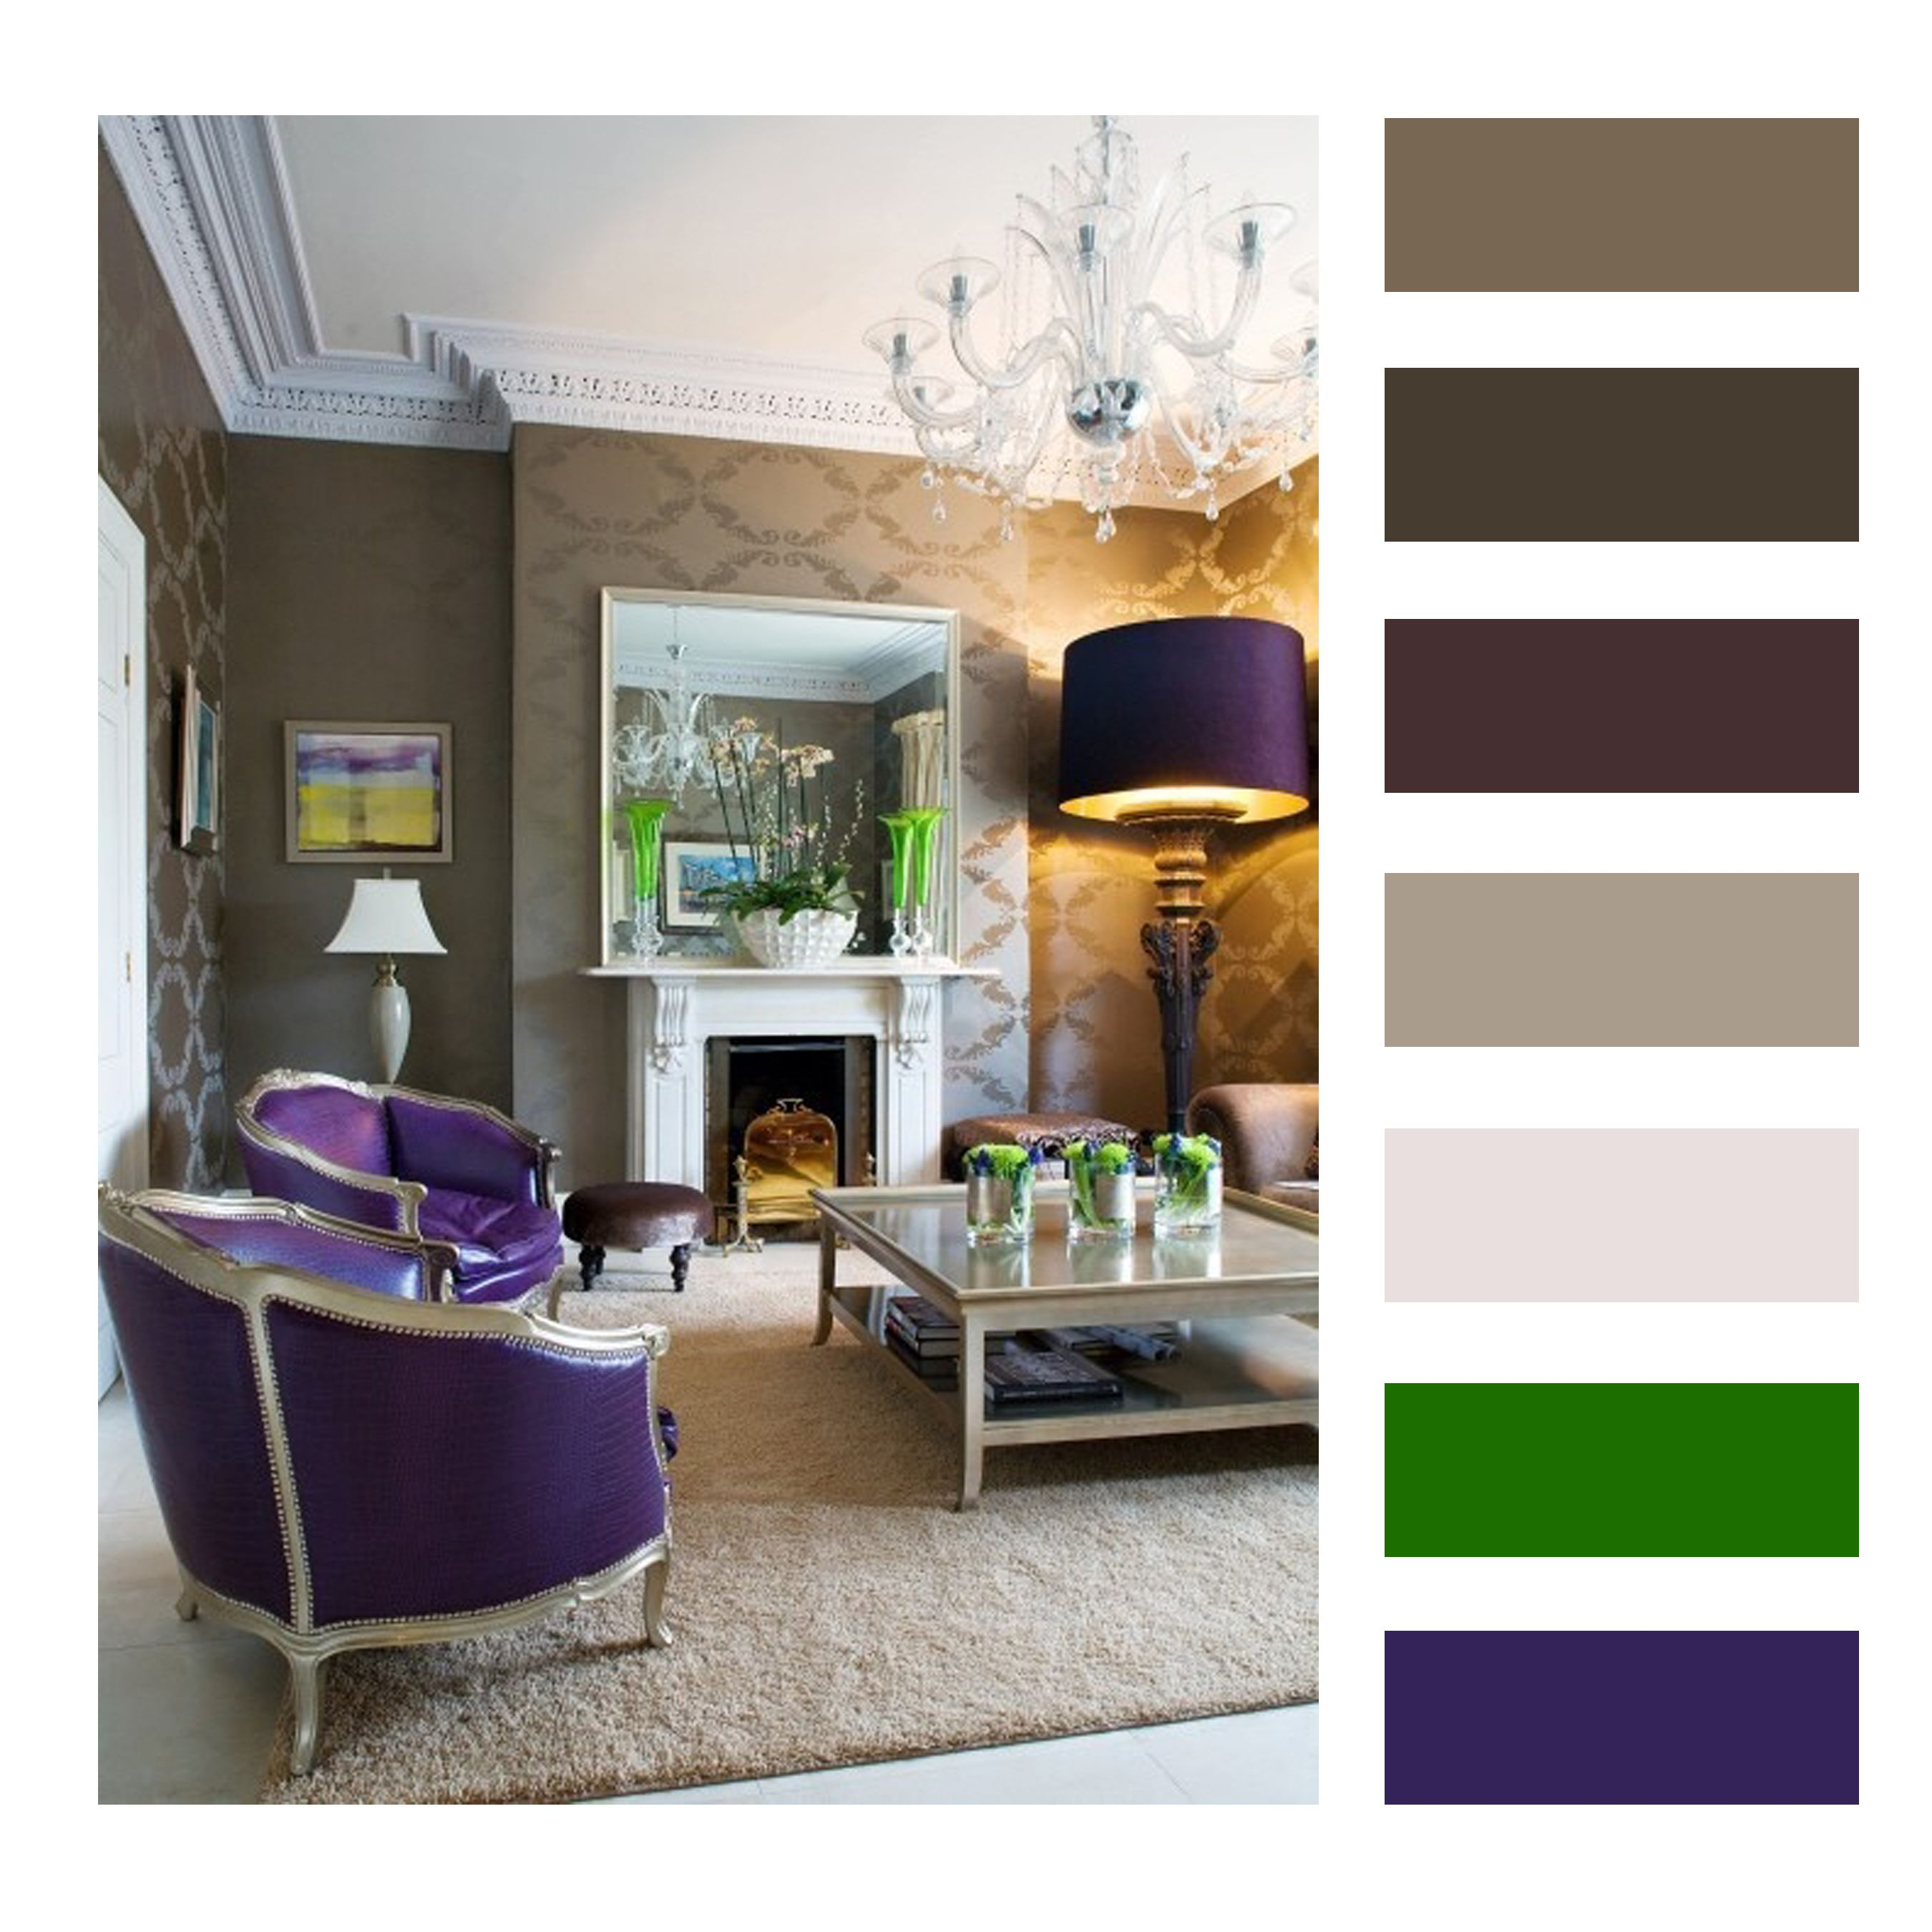 interior design color palette green and purple - Google Search ...